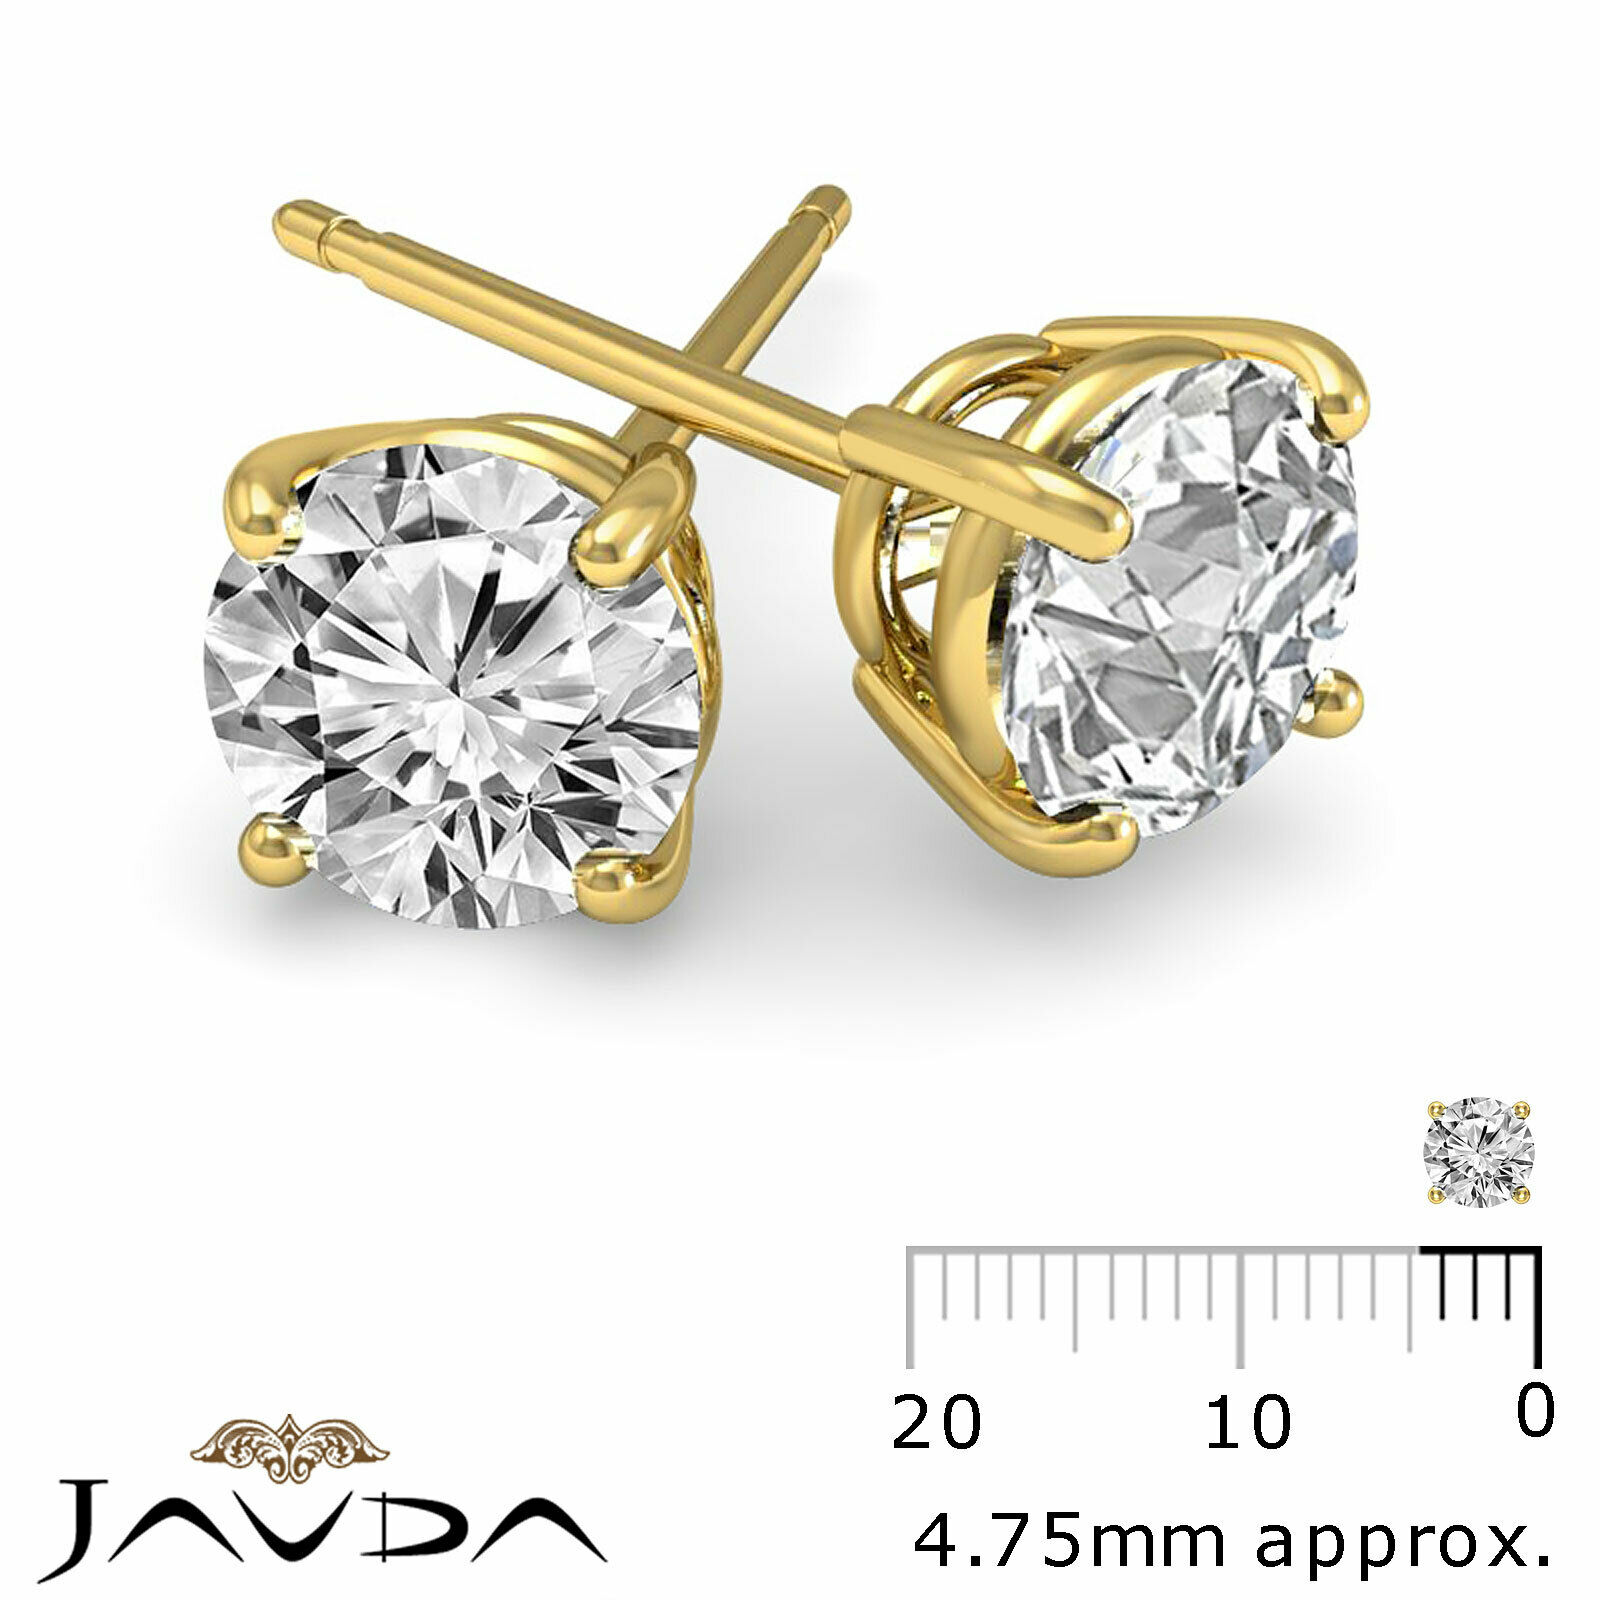 4 Prong Double Wire Round Cut Diamond 1 Pair Stud Women's Earrings 1/2 ctw. 1